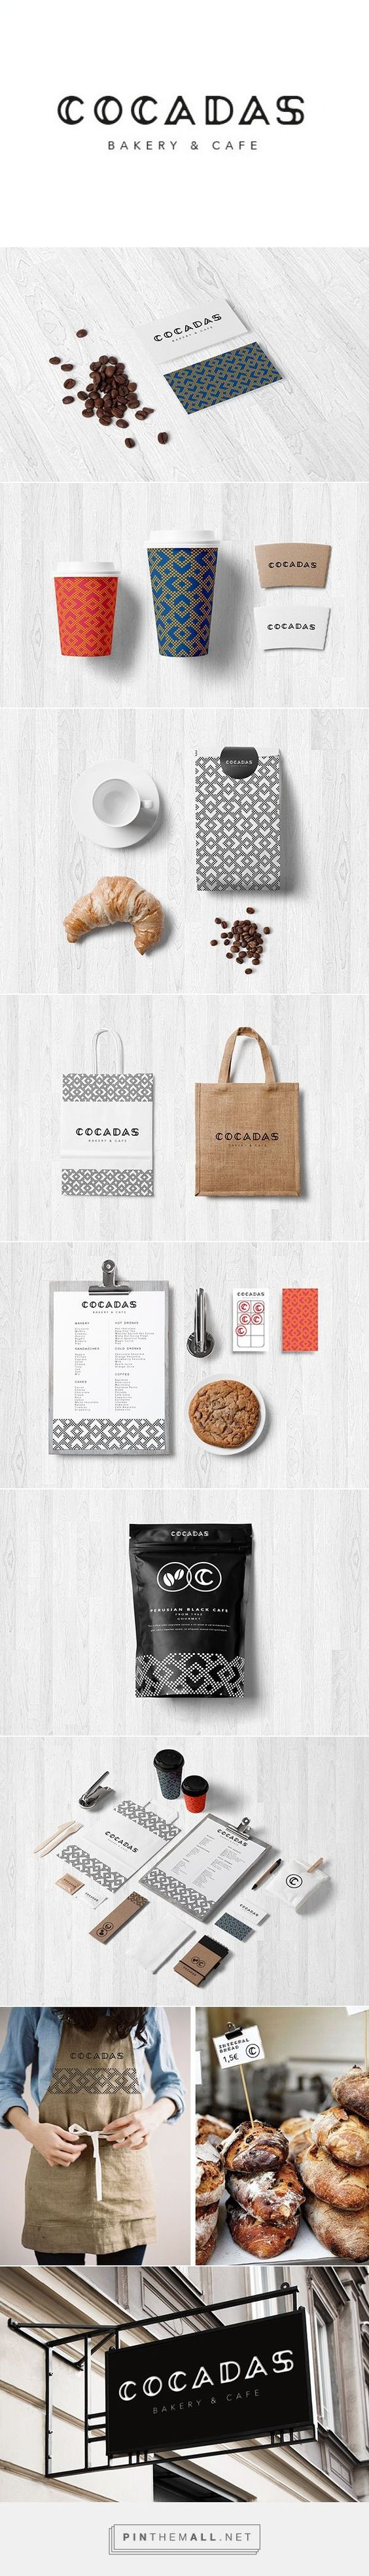 C O C A D A S - Bakery & Cafe on Behance by Laia Gubern curated by Packaging Diva PD. Tasty identity packaging branding. Who wants to go : ) 2015 top team pin.